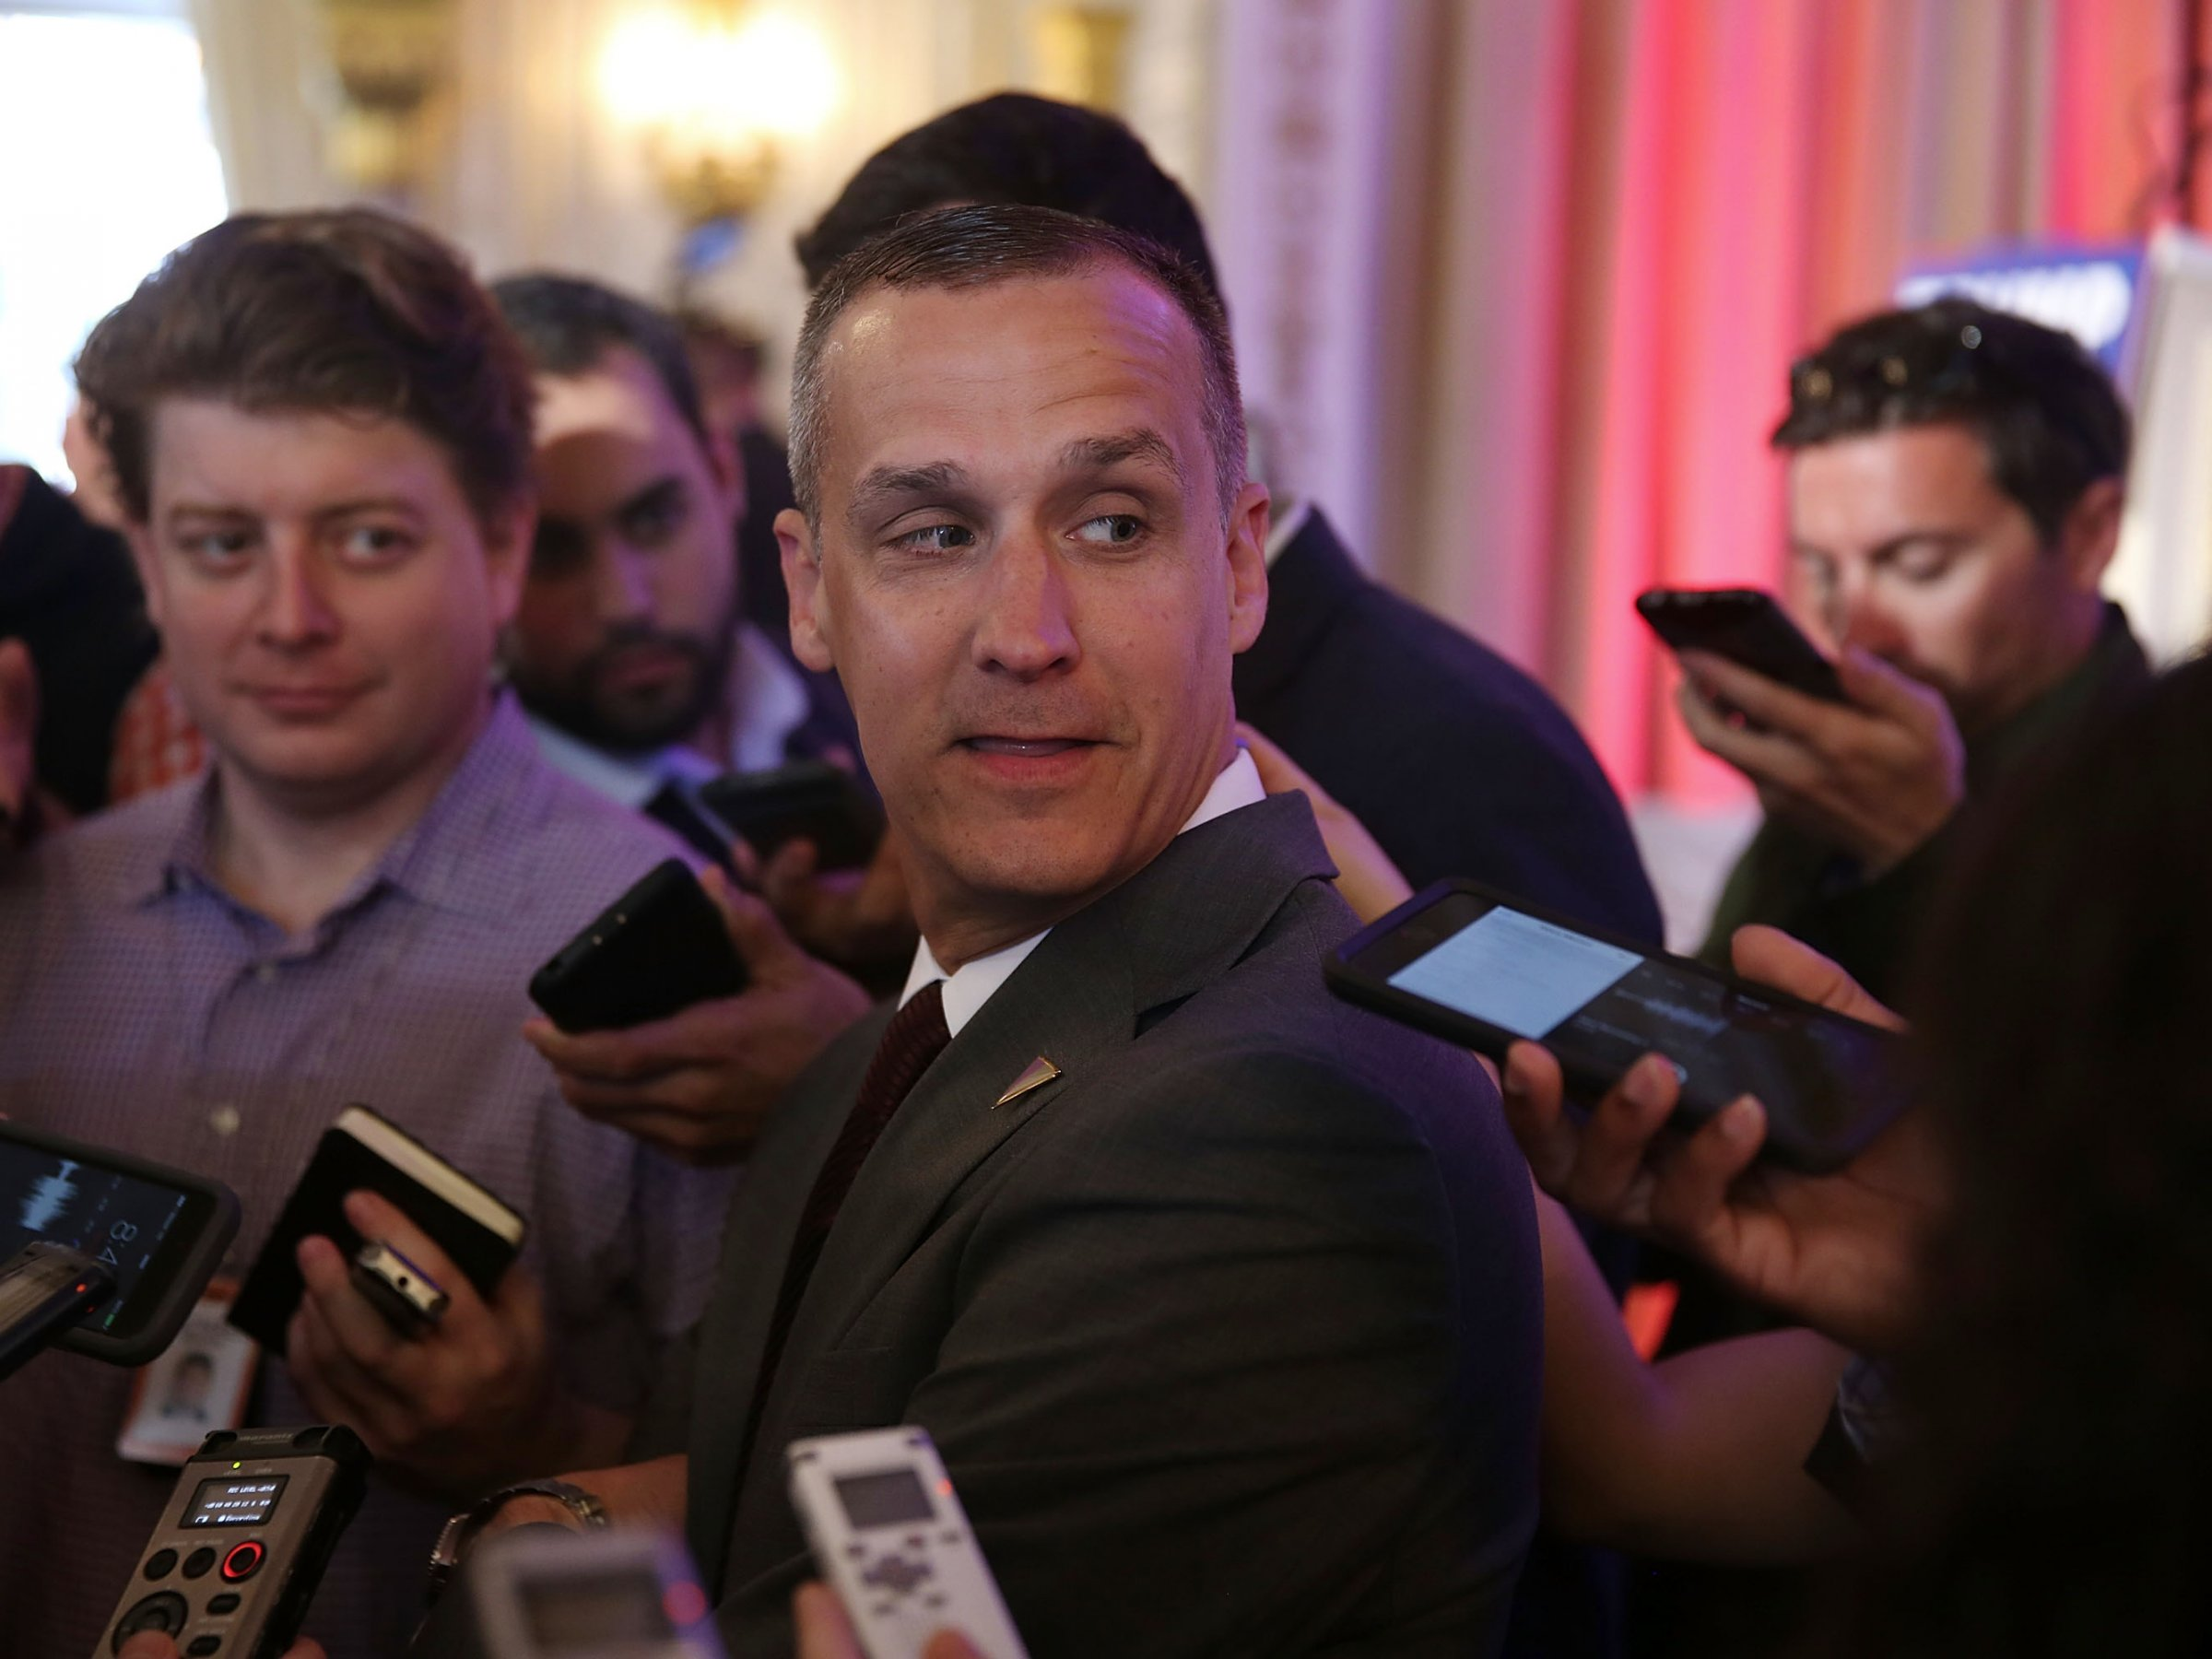 Donald Trump campaign manager fired